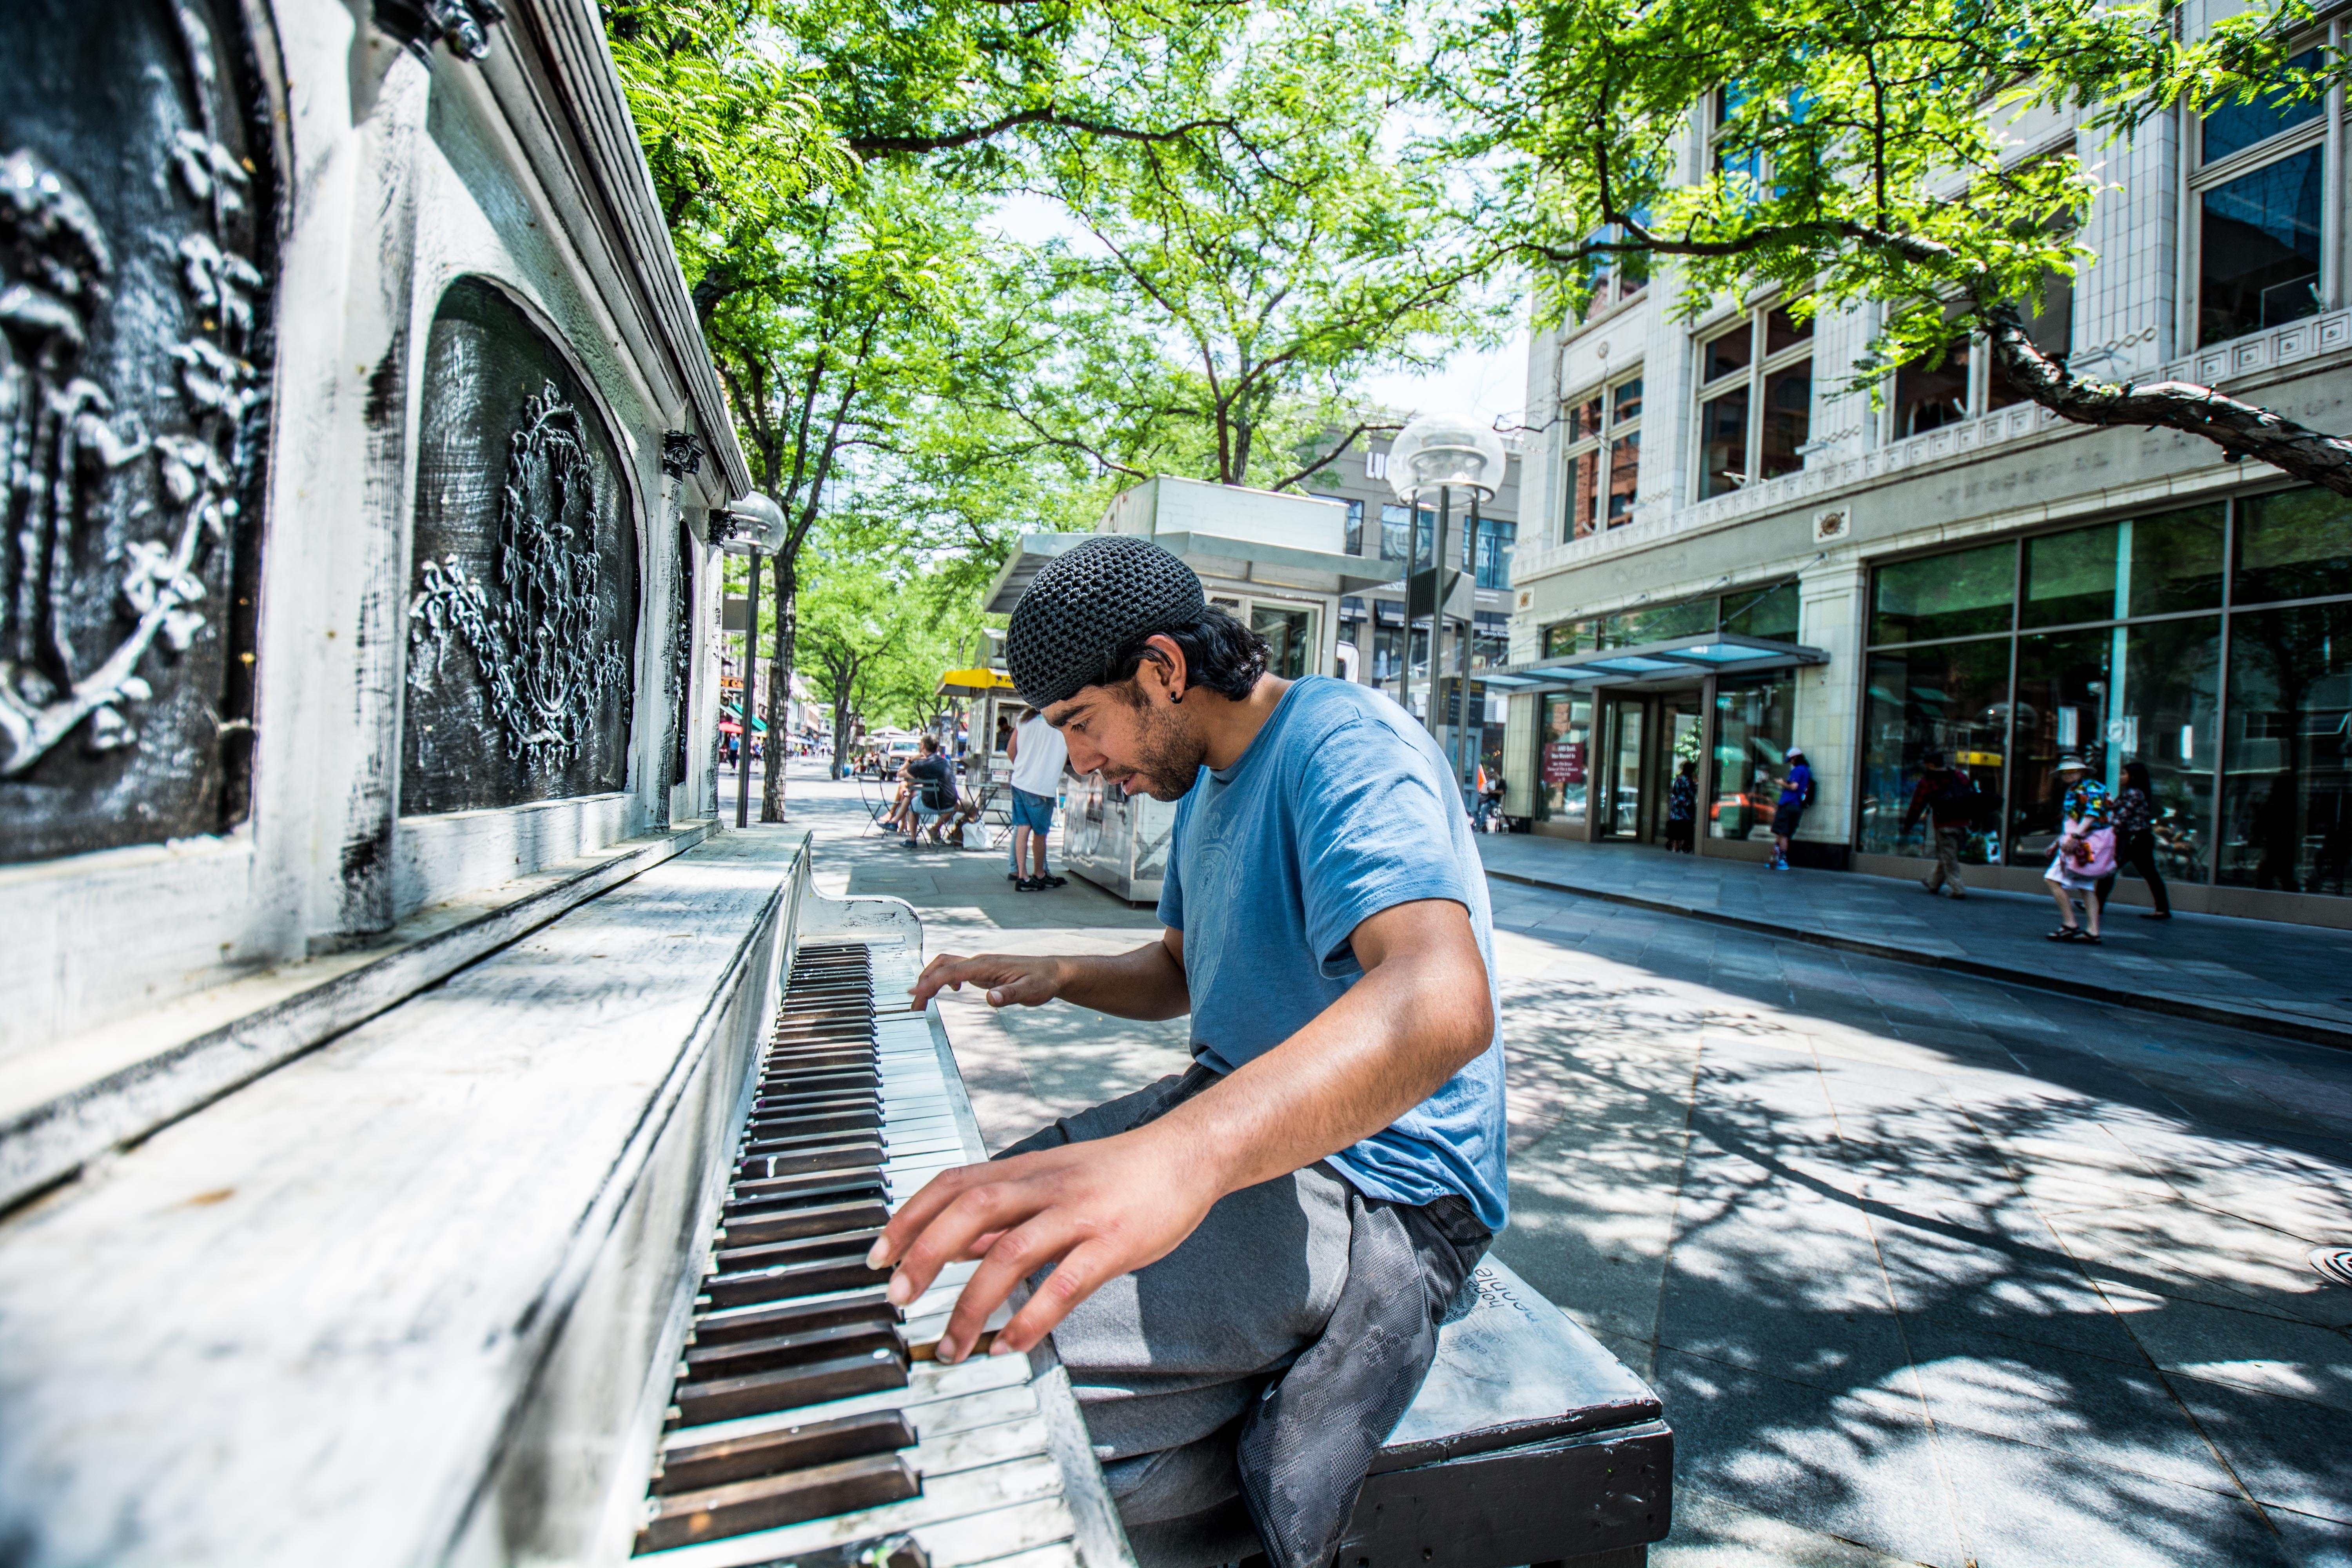 man playing piano on street